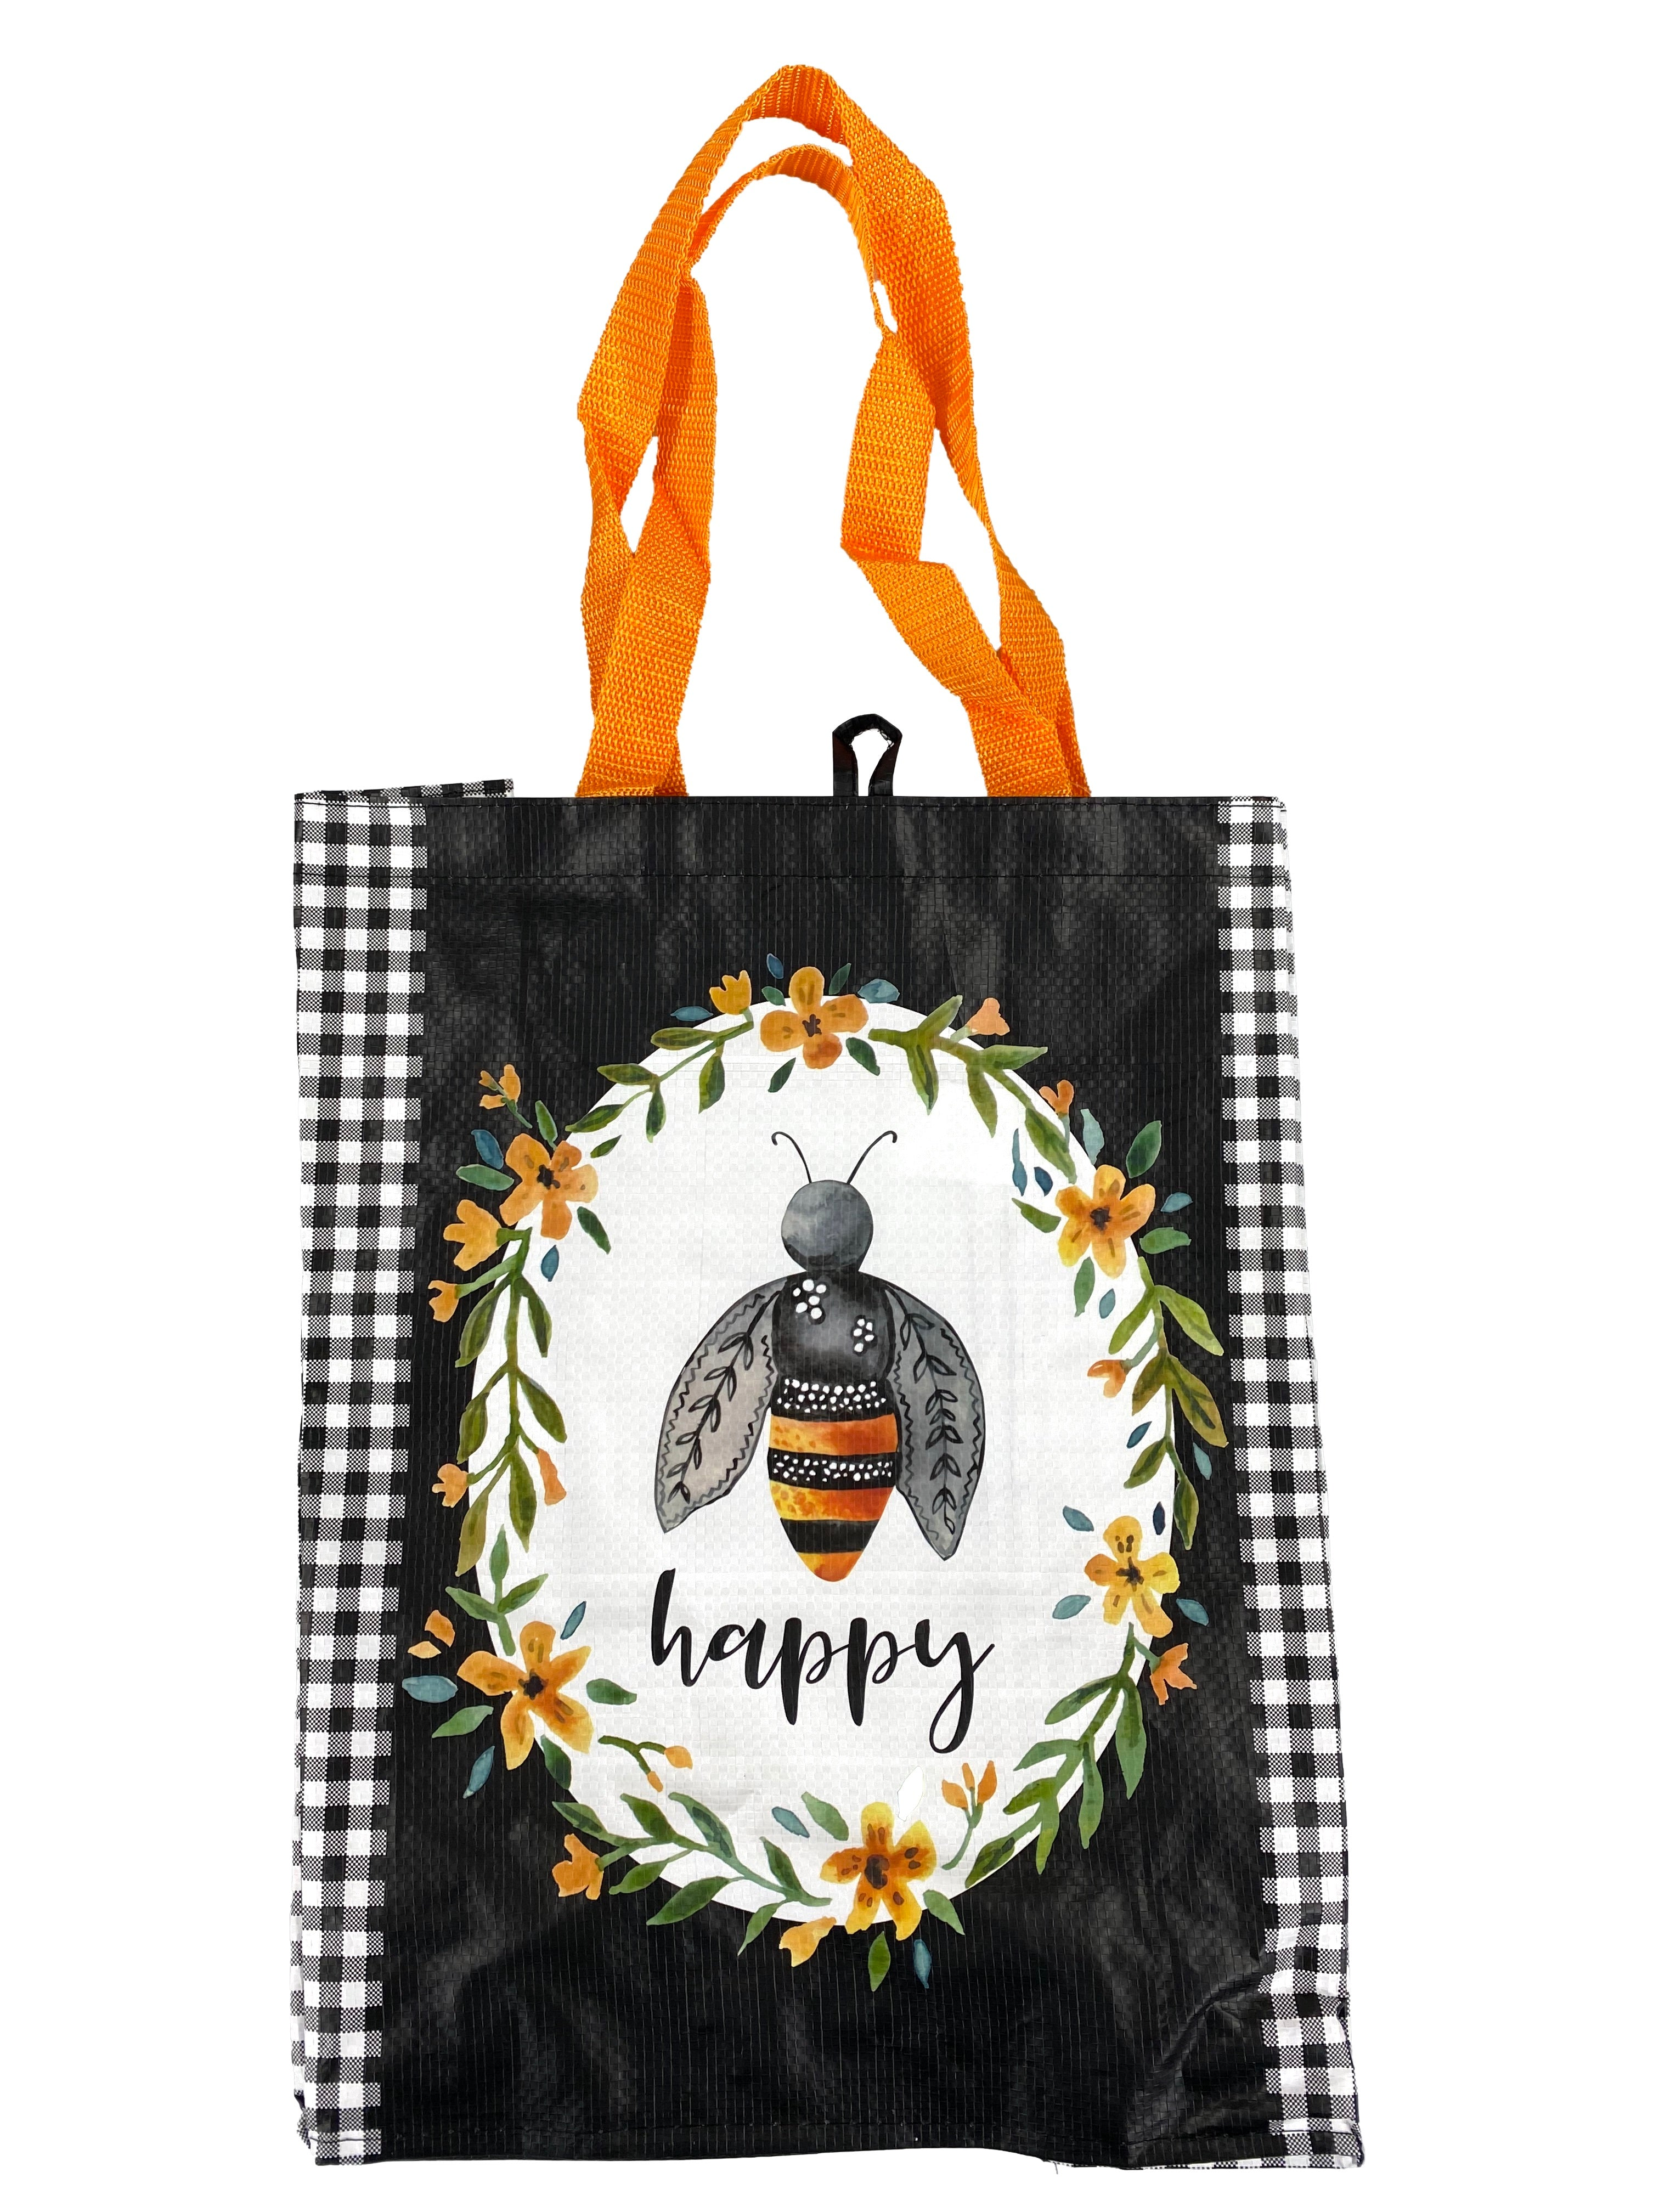 Bee Happy - Reusable Shopping Tote